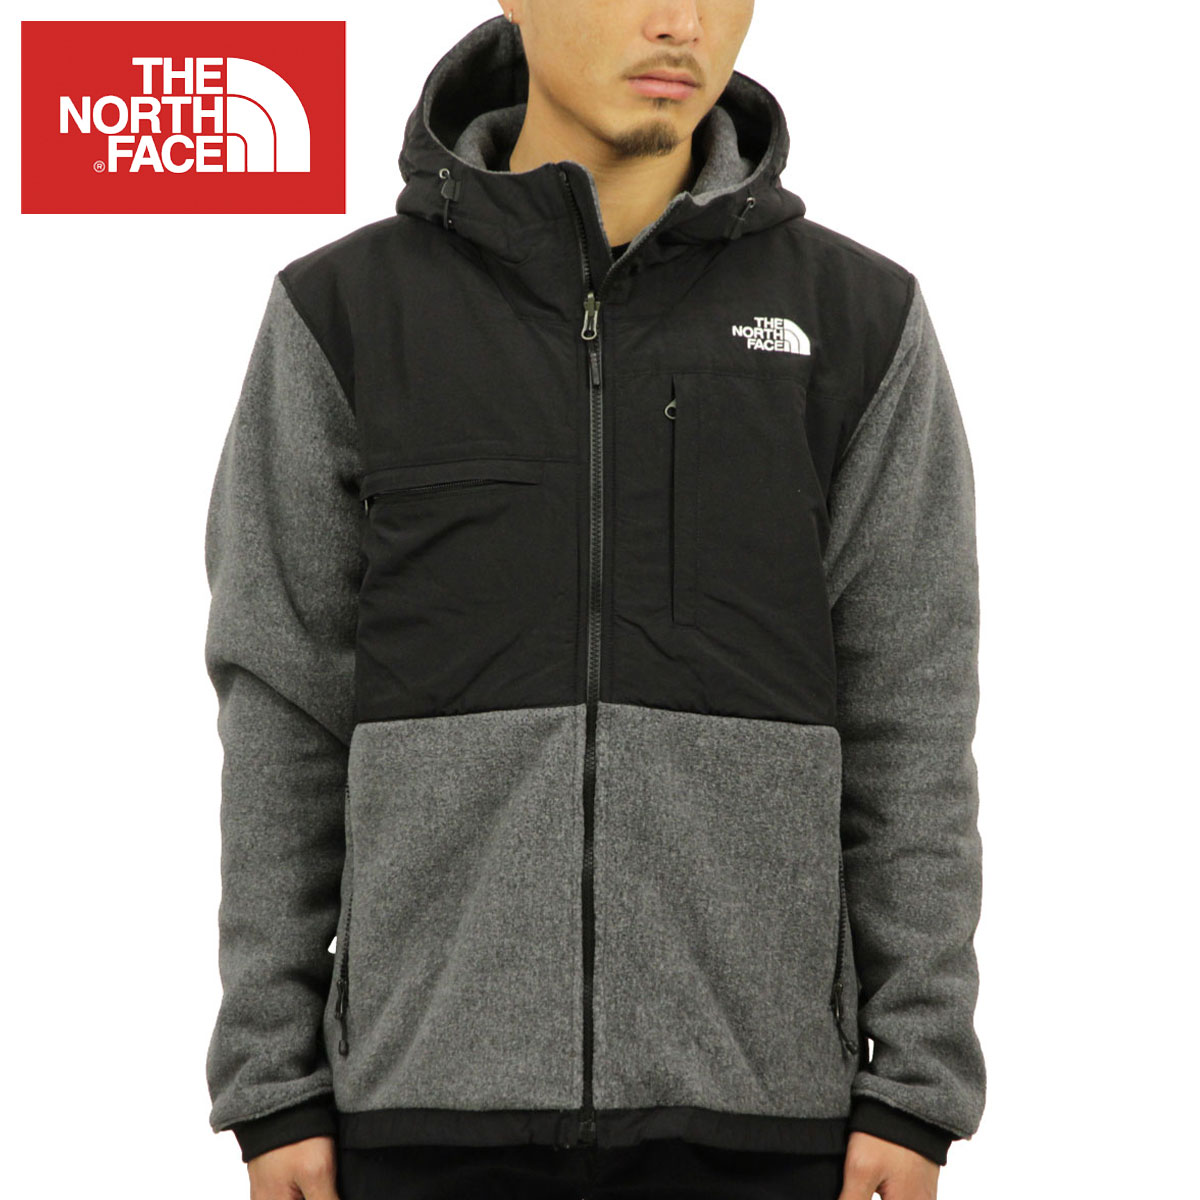 North Face THE NORTH FACE regular article men fleece jacket DENALI 2 FLEECE  HOODIE JACKET RECYCLED CHARCOAL GREY HEATHER   TNF BLACK NF0A2TBN MA9 7e36084f8